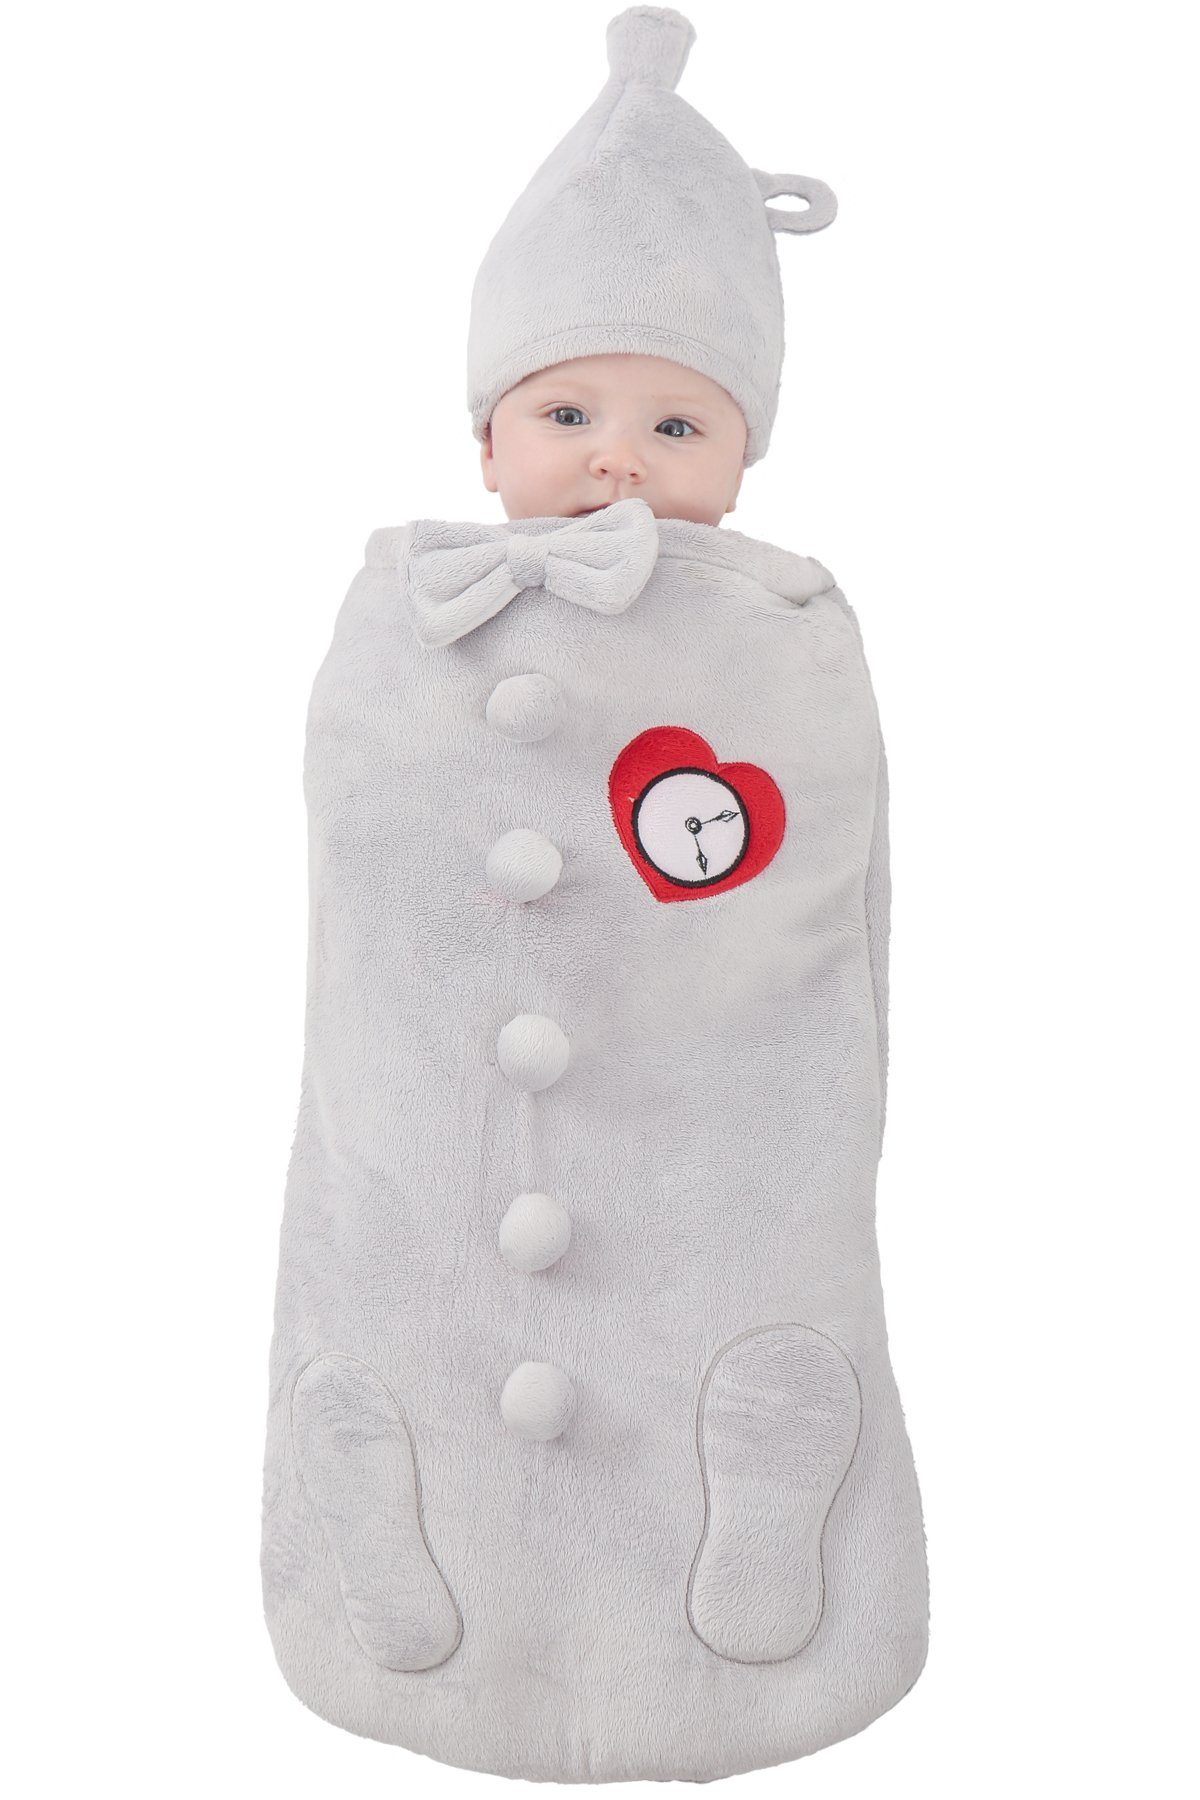 Princess Paradise Baby's The Wizard of Oz Tin Man Newborn Swaddle Deluxe Costume, As Shown, 0/3M